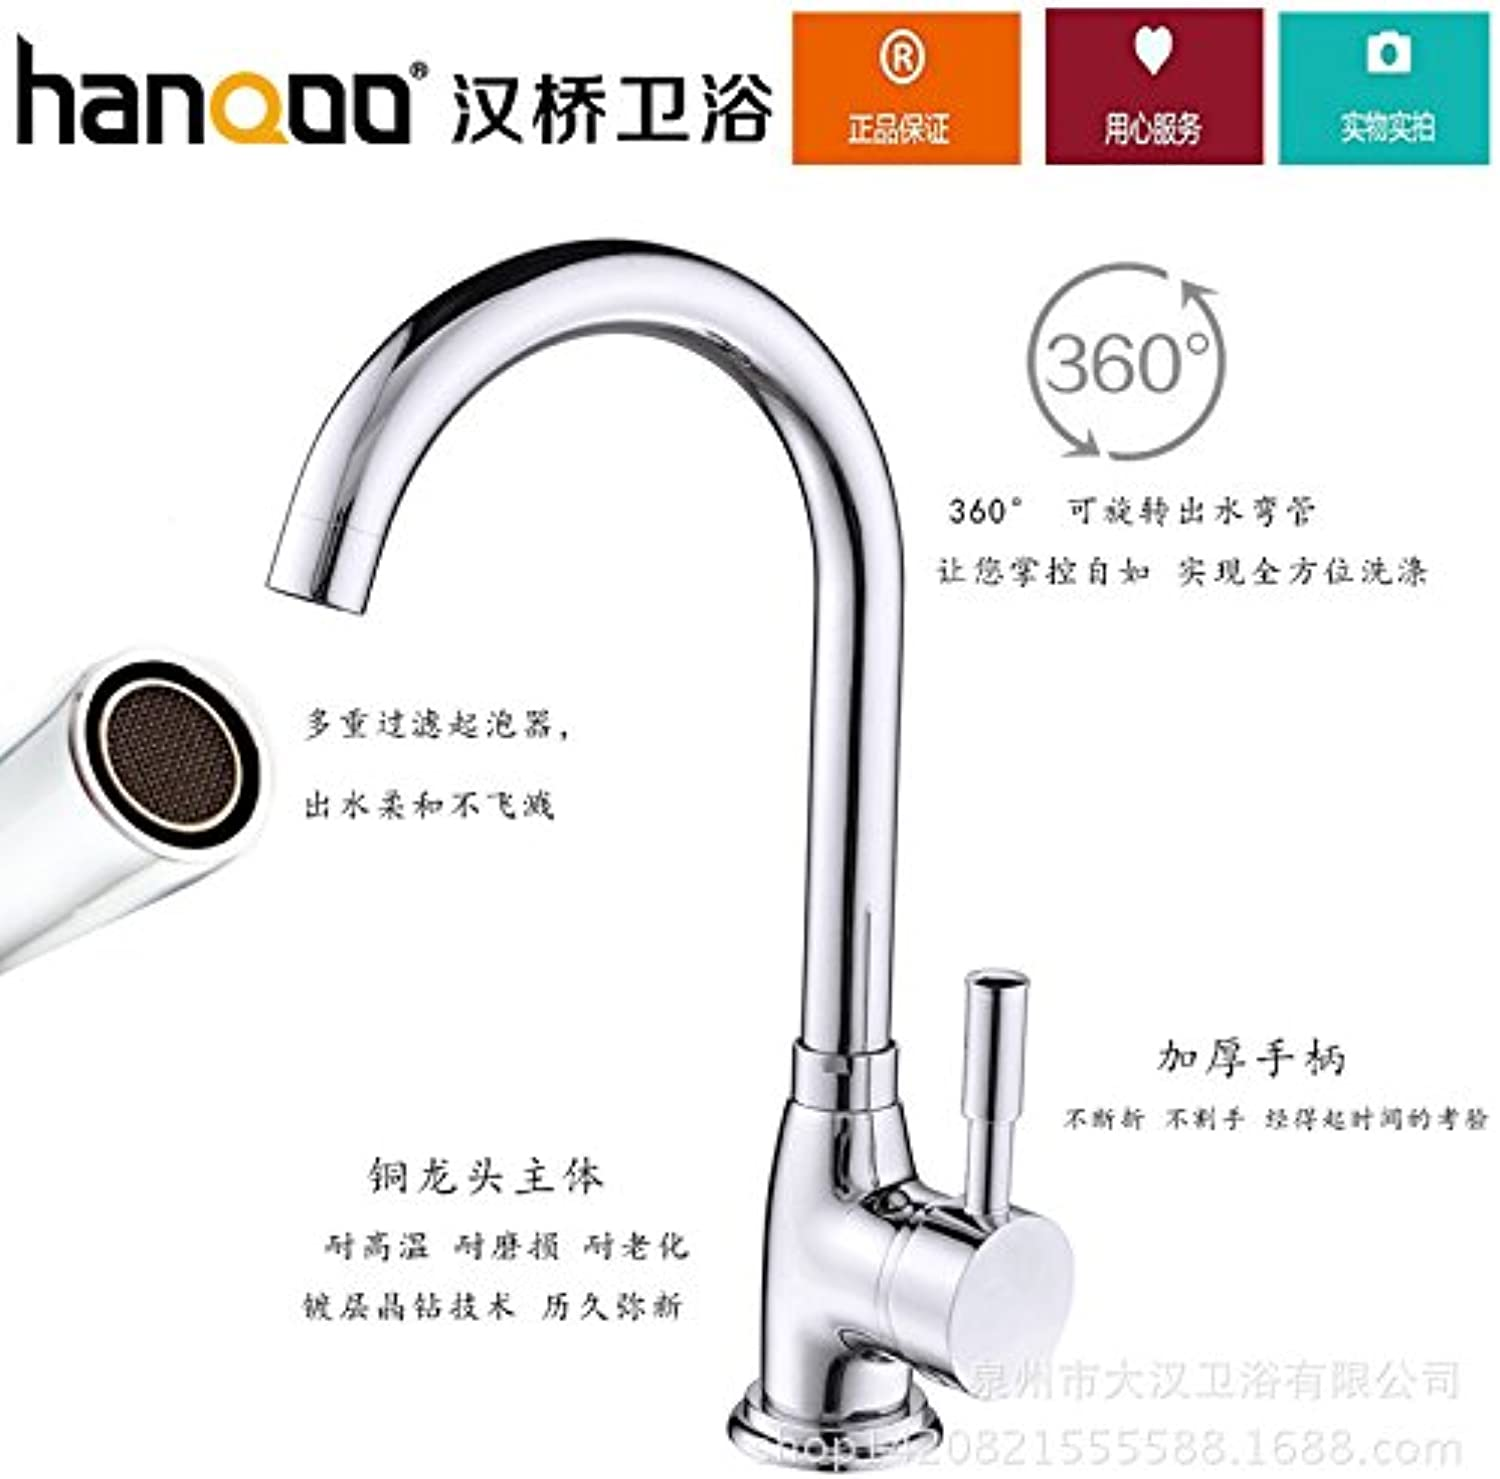 Lpophy Bathroom Sink Mixer Taps Faucet Bath Waterfall Cold and Hot Water Tap for Washroom Bathroom and Kitchen Copper Point Bent Pipe greenical Single Handle Double Control Tip Tee